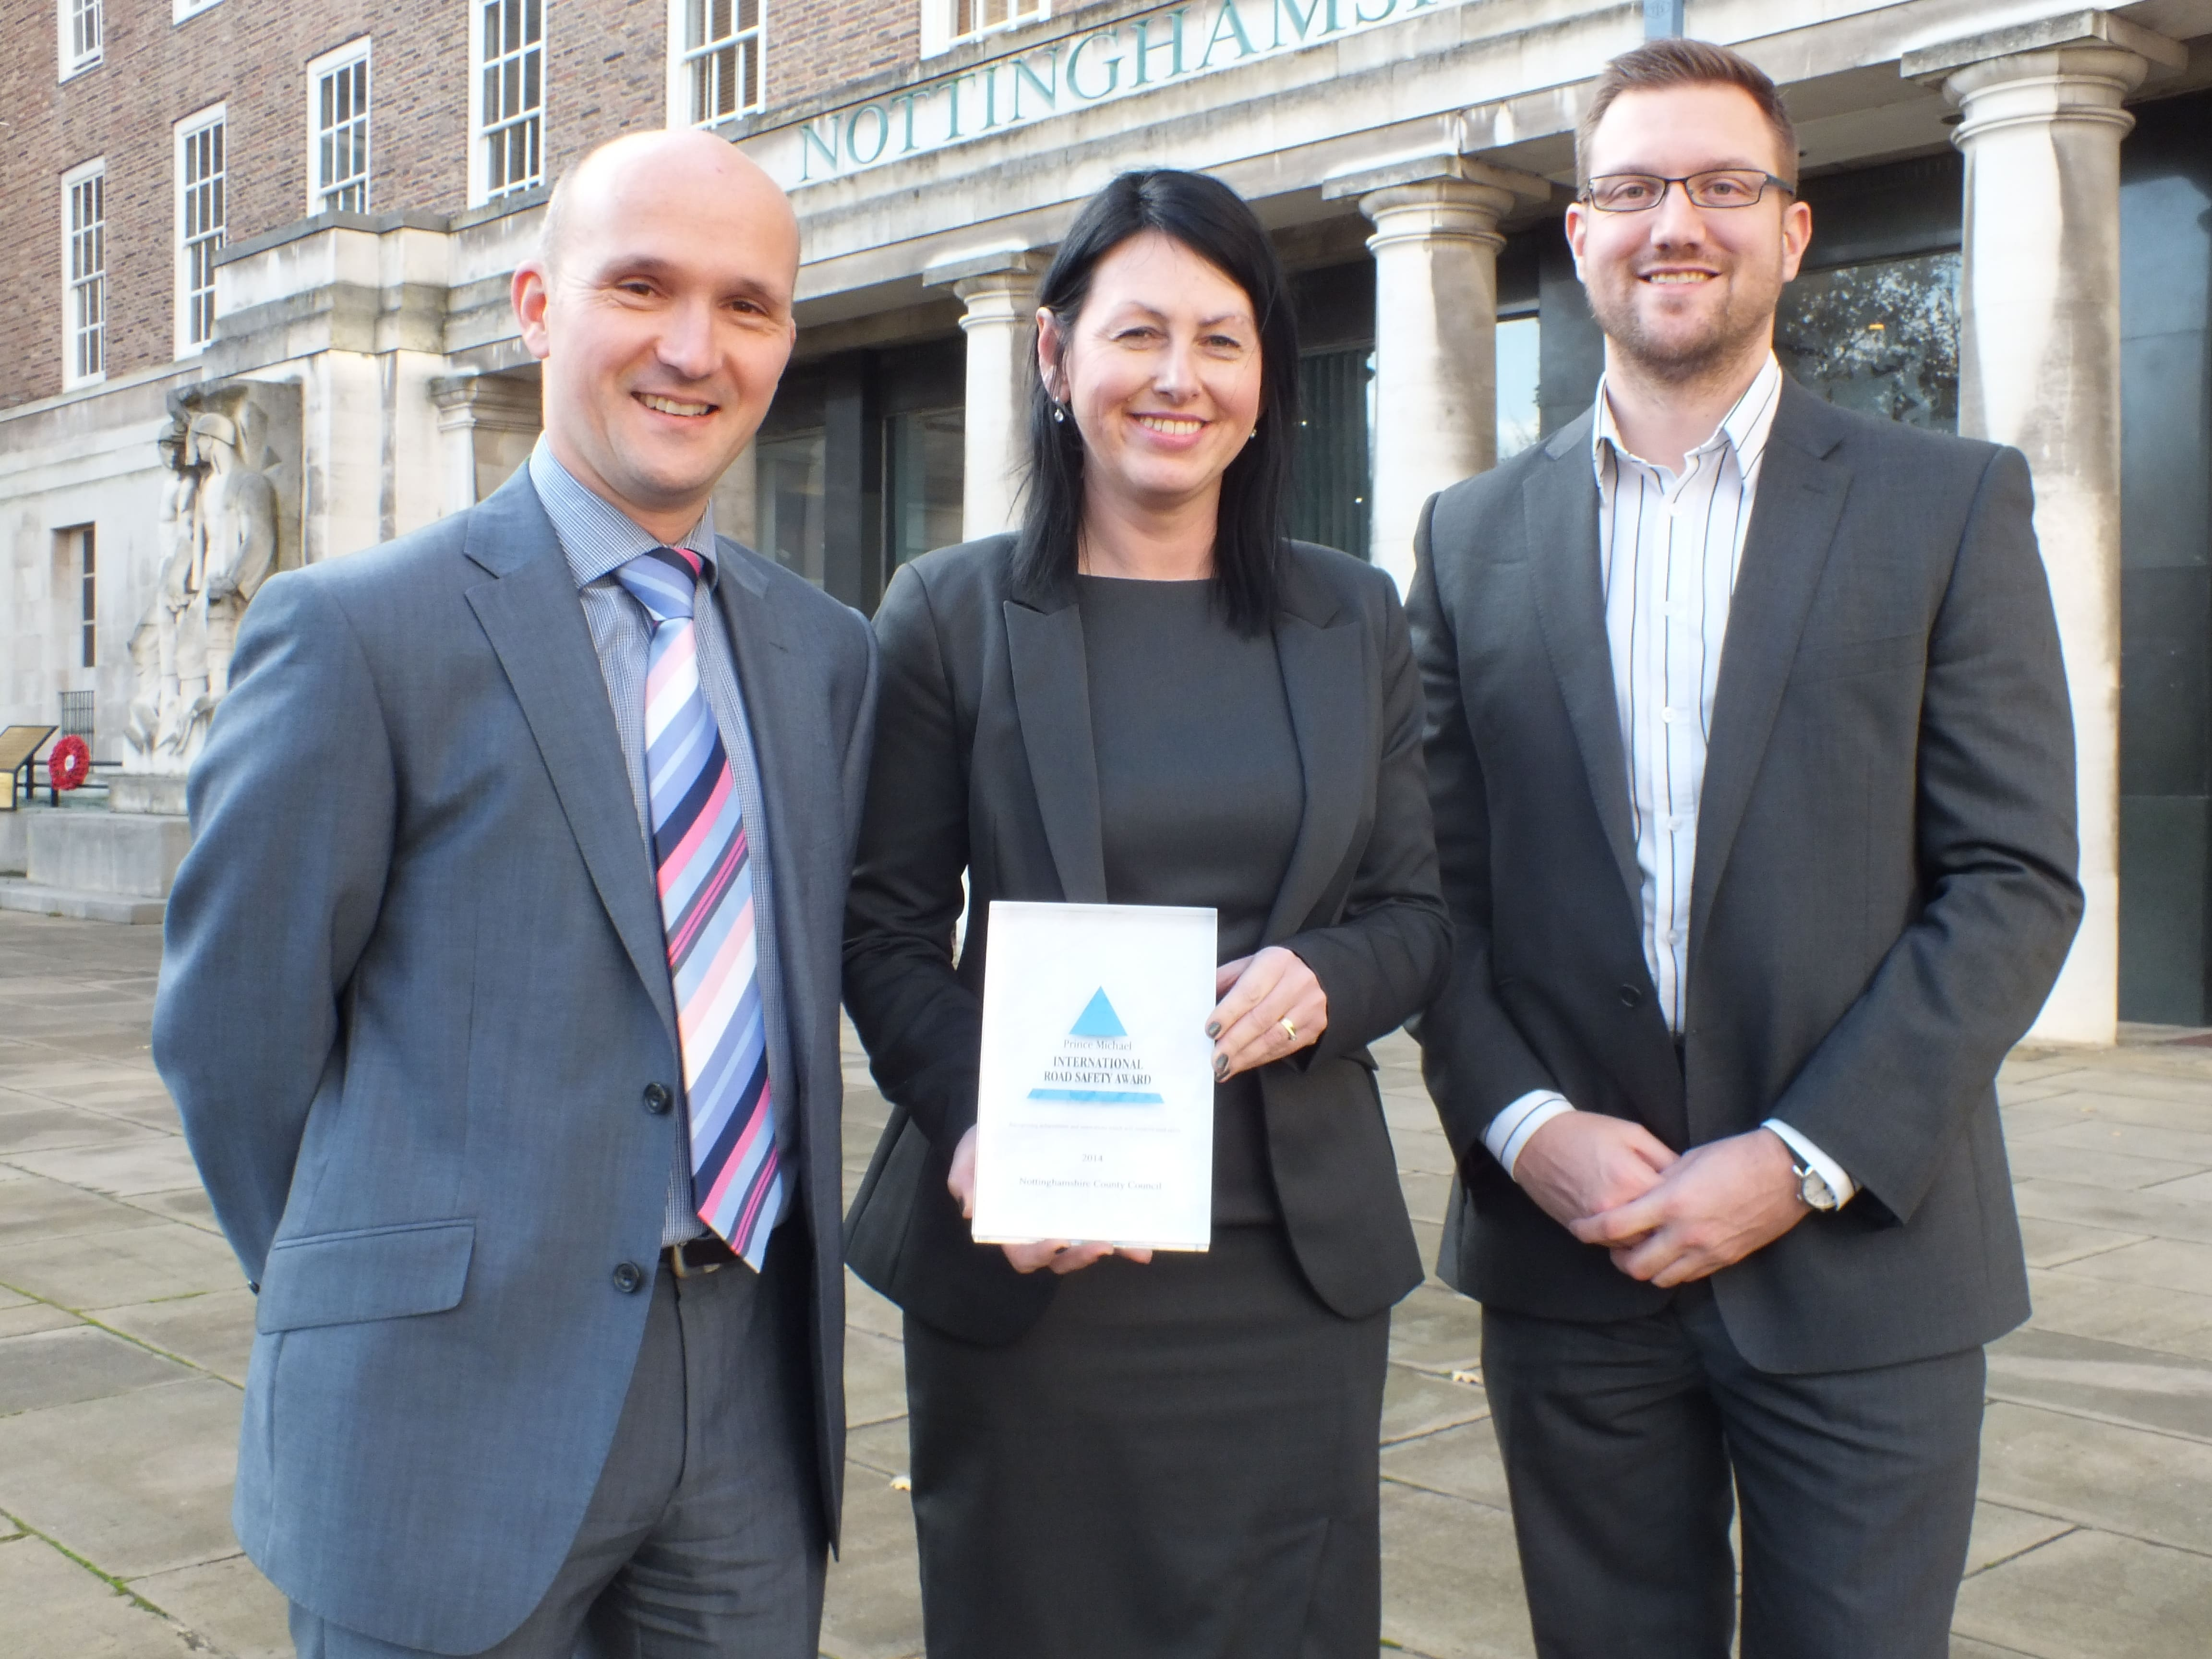 SPECS3 route enforcement scheme scoops prestigious road safety award.